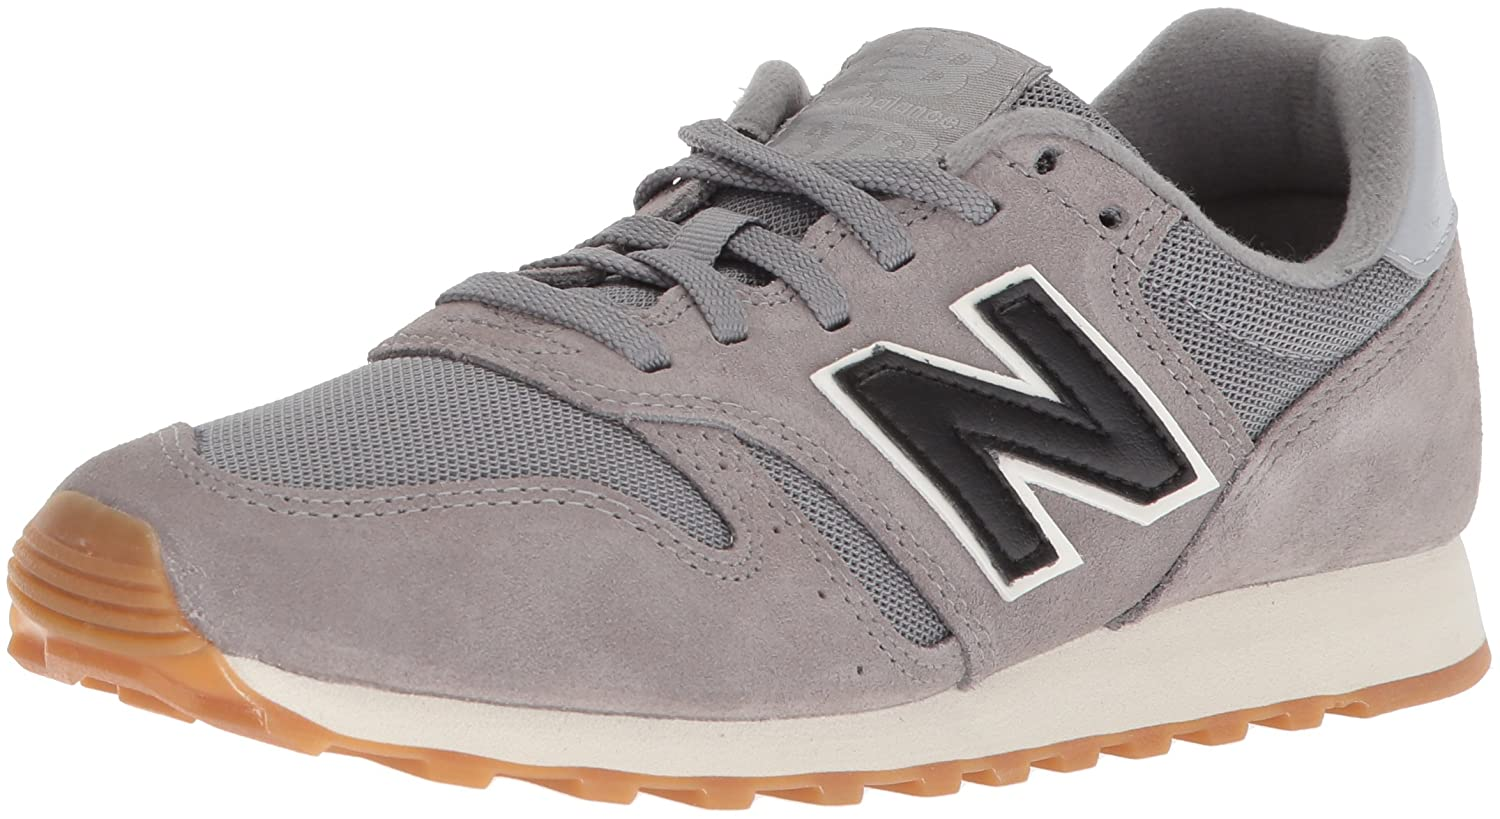 New Balance Men's 373V1 Sneaker B072LWCWR5 4 2E US|Grey/Black